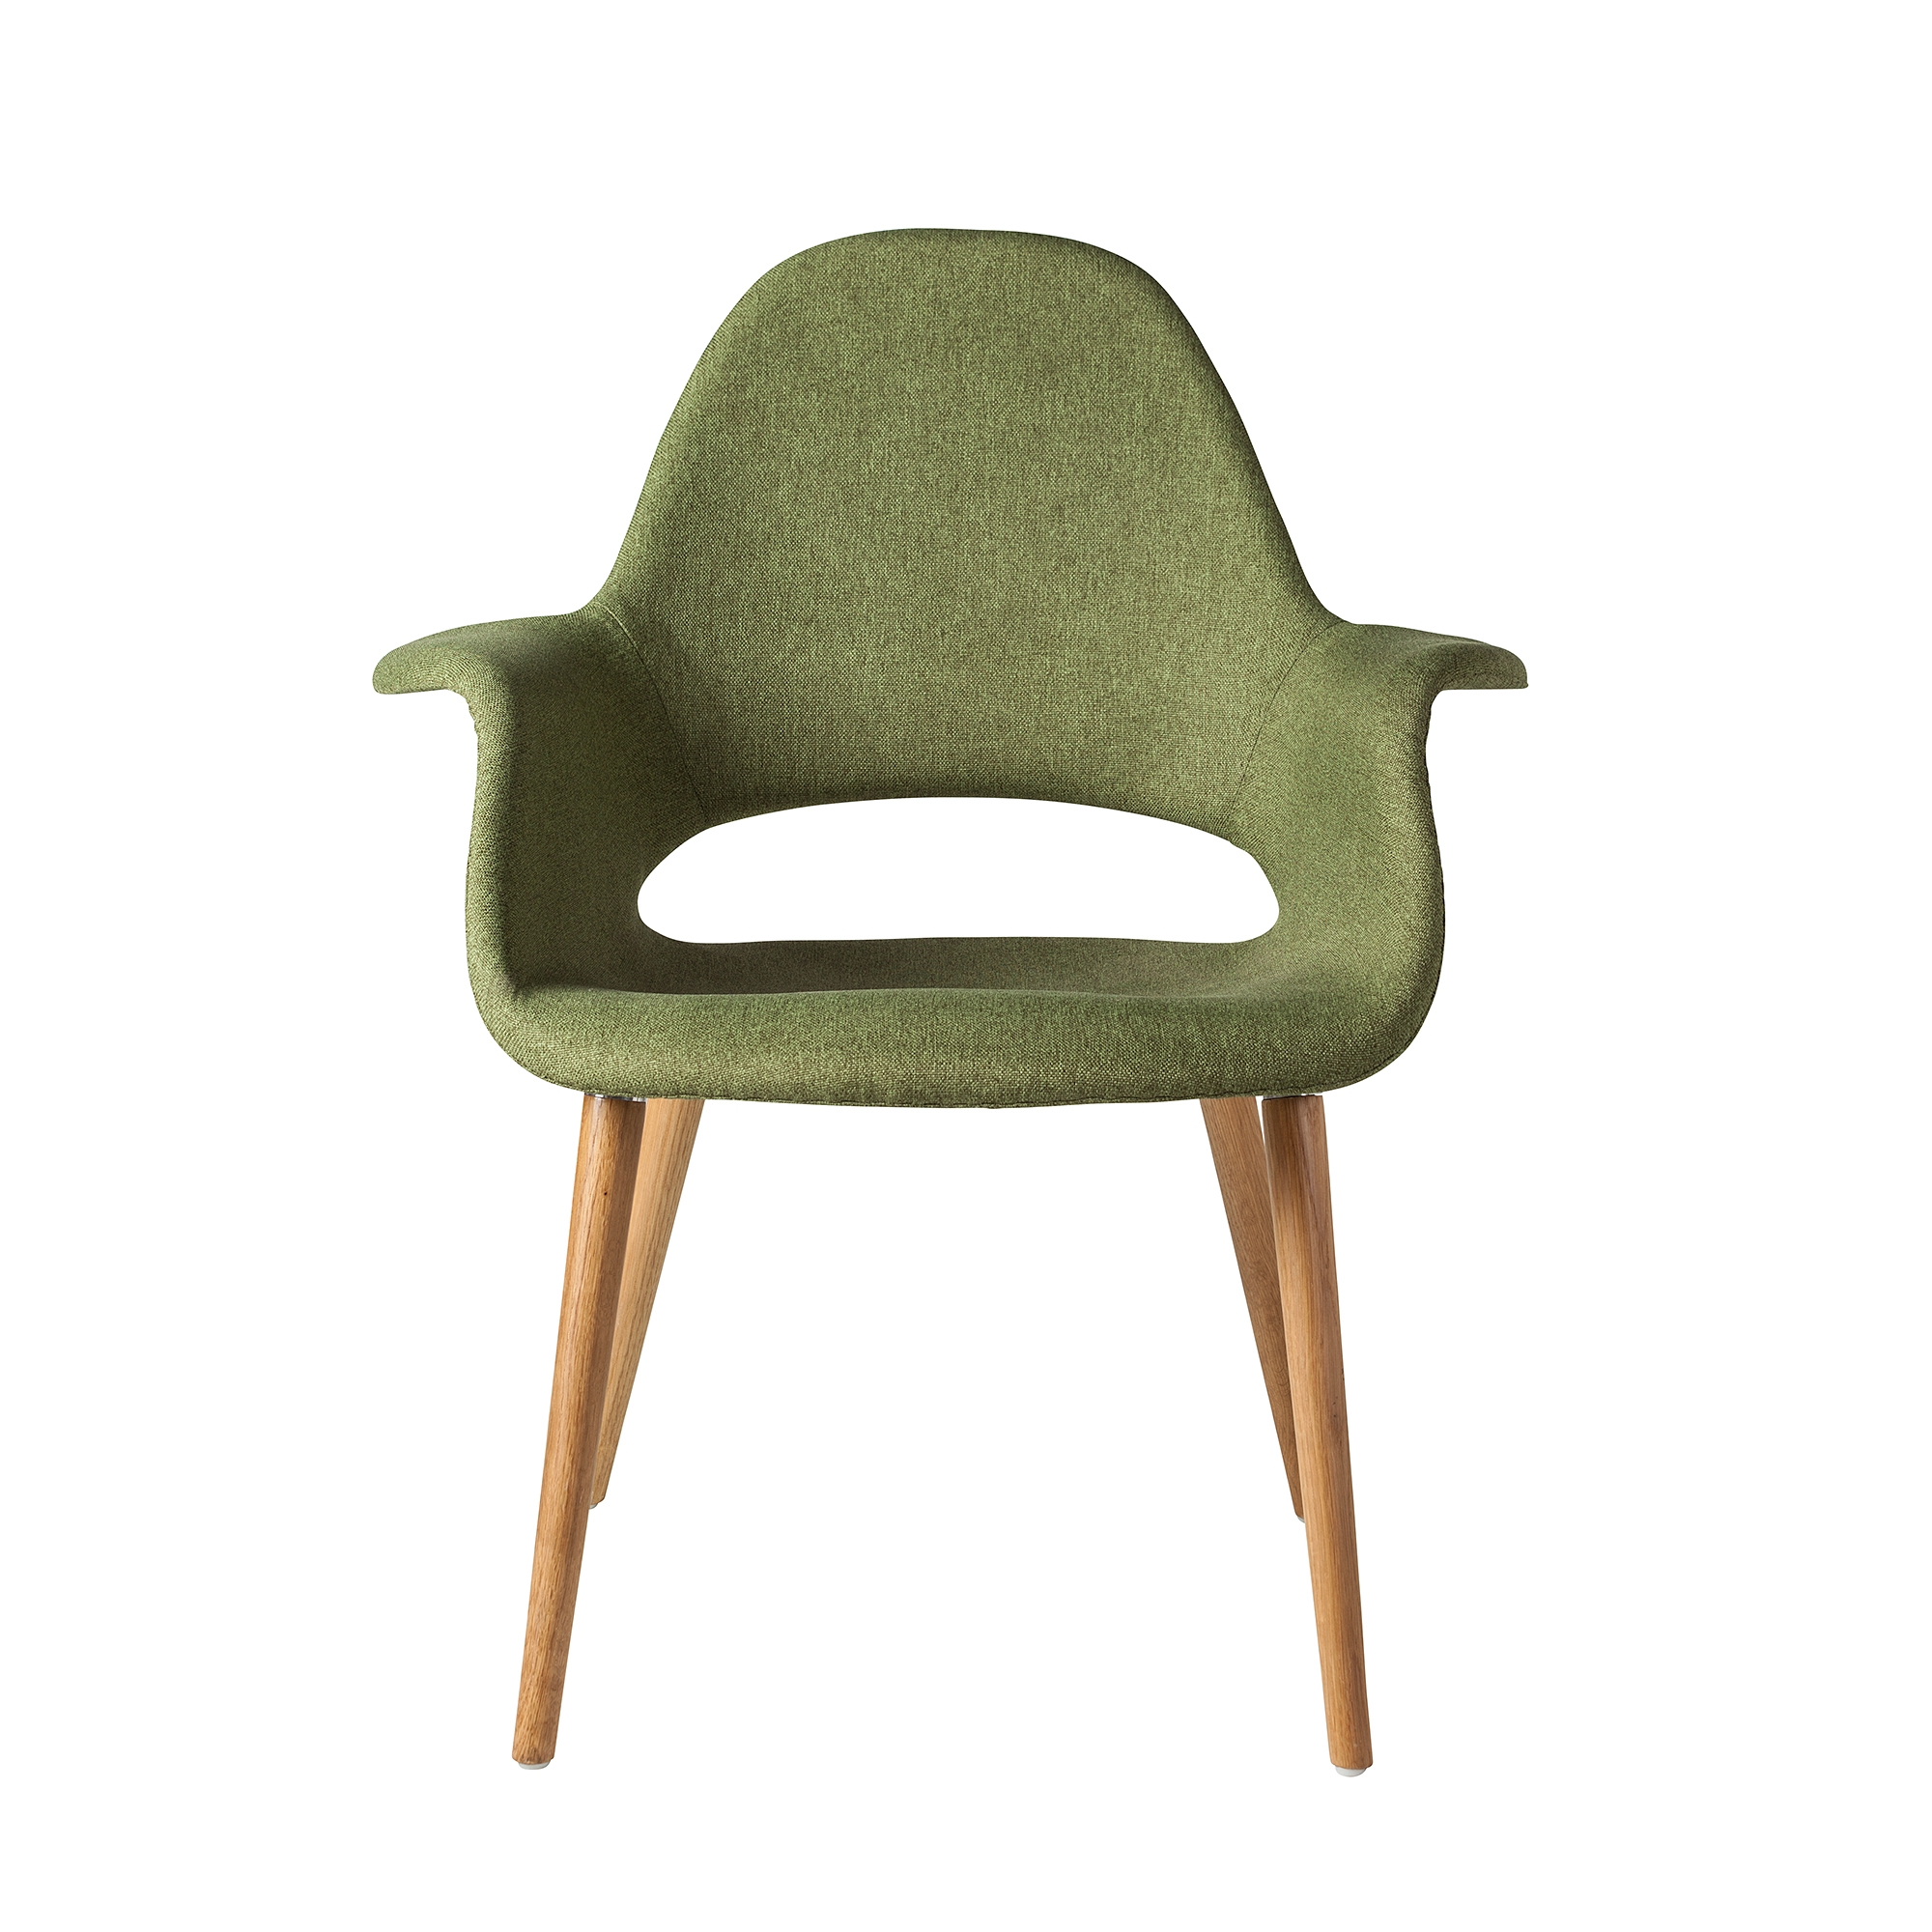 Organic Chair Reproduction   Green